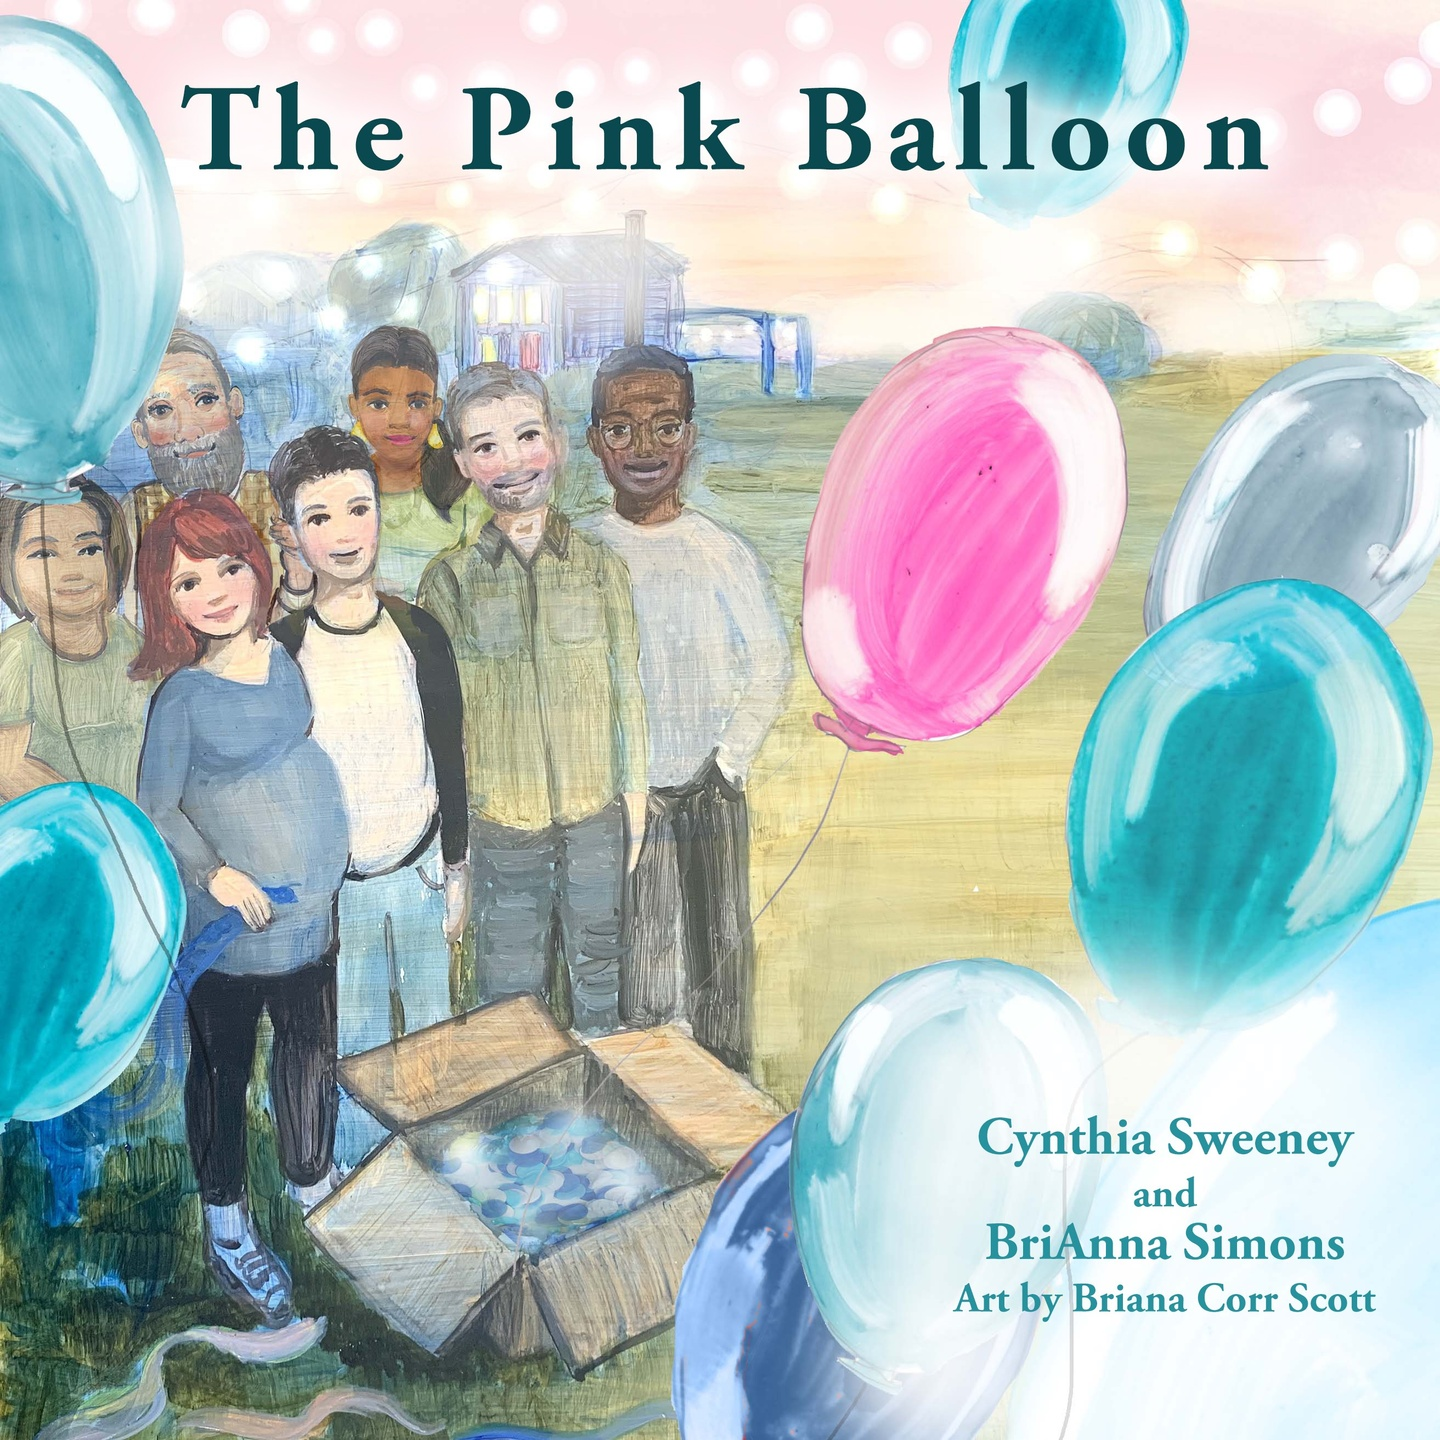 Cover of the storybook The Pink Balloon. Image of friends and adults standing in front of a box of blue balloons with one pink balloon floating upwards. The woman in the painted artwork is pregnant.